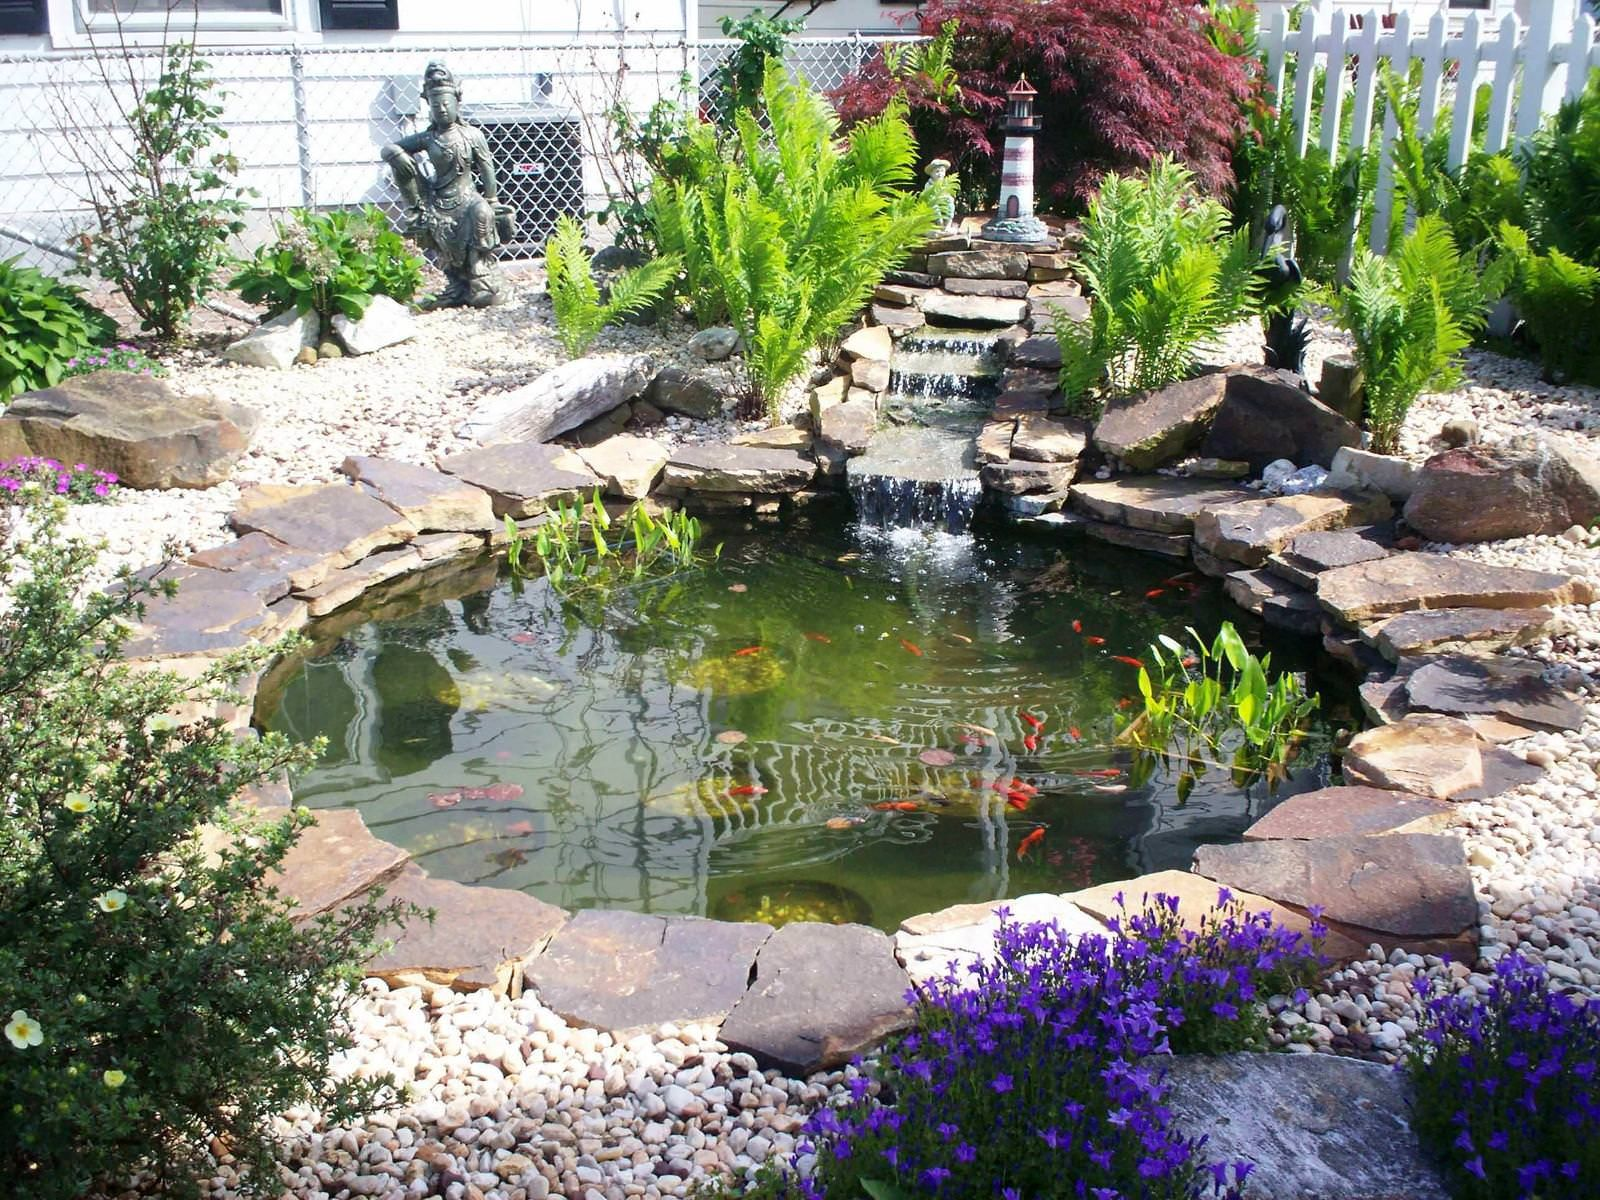 Small garden or backyard aquarium ideas practic ideas for Easy fish pond